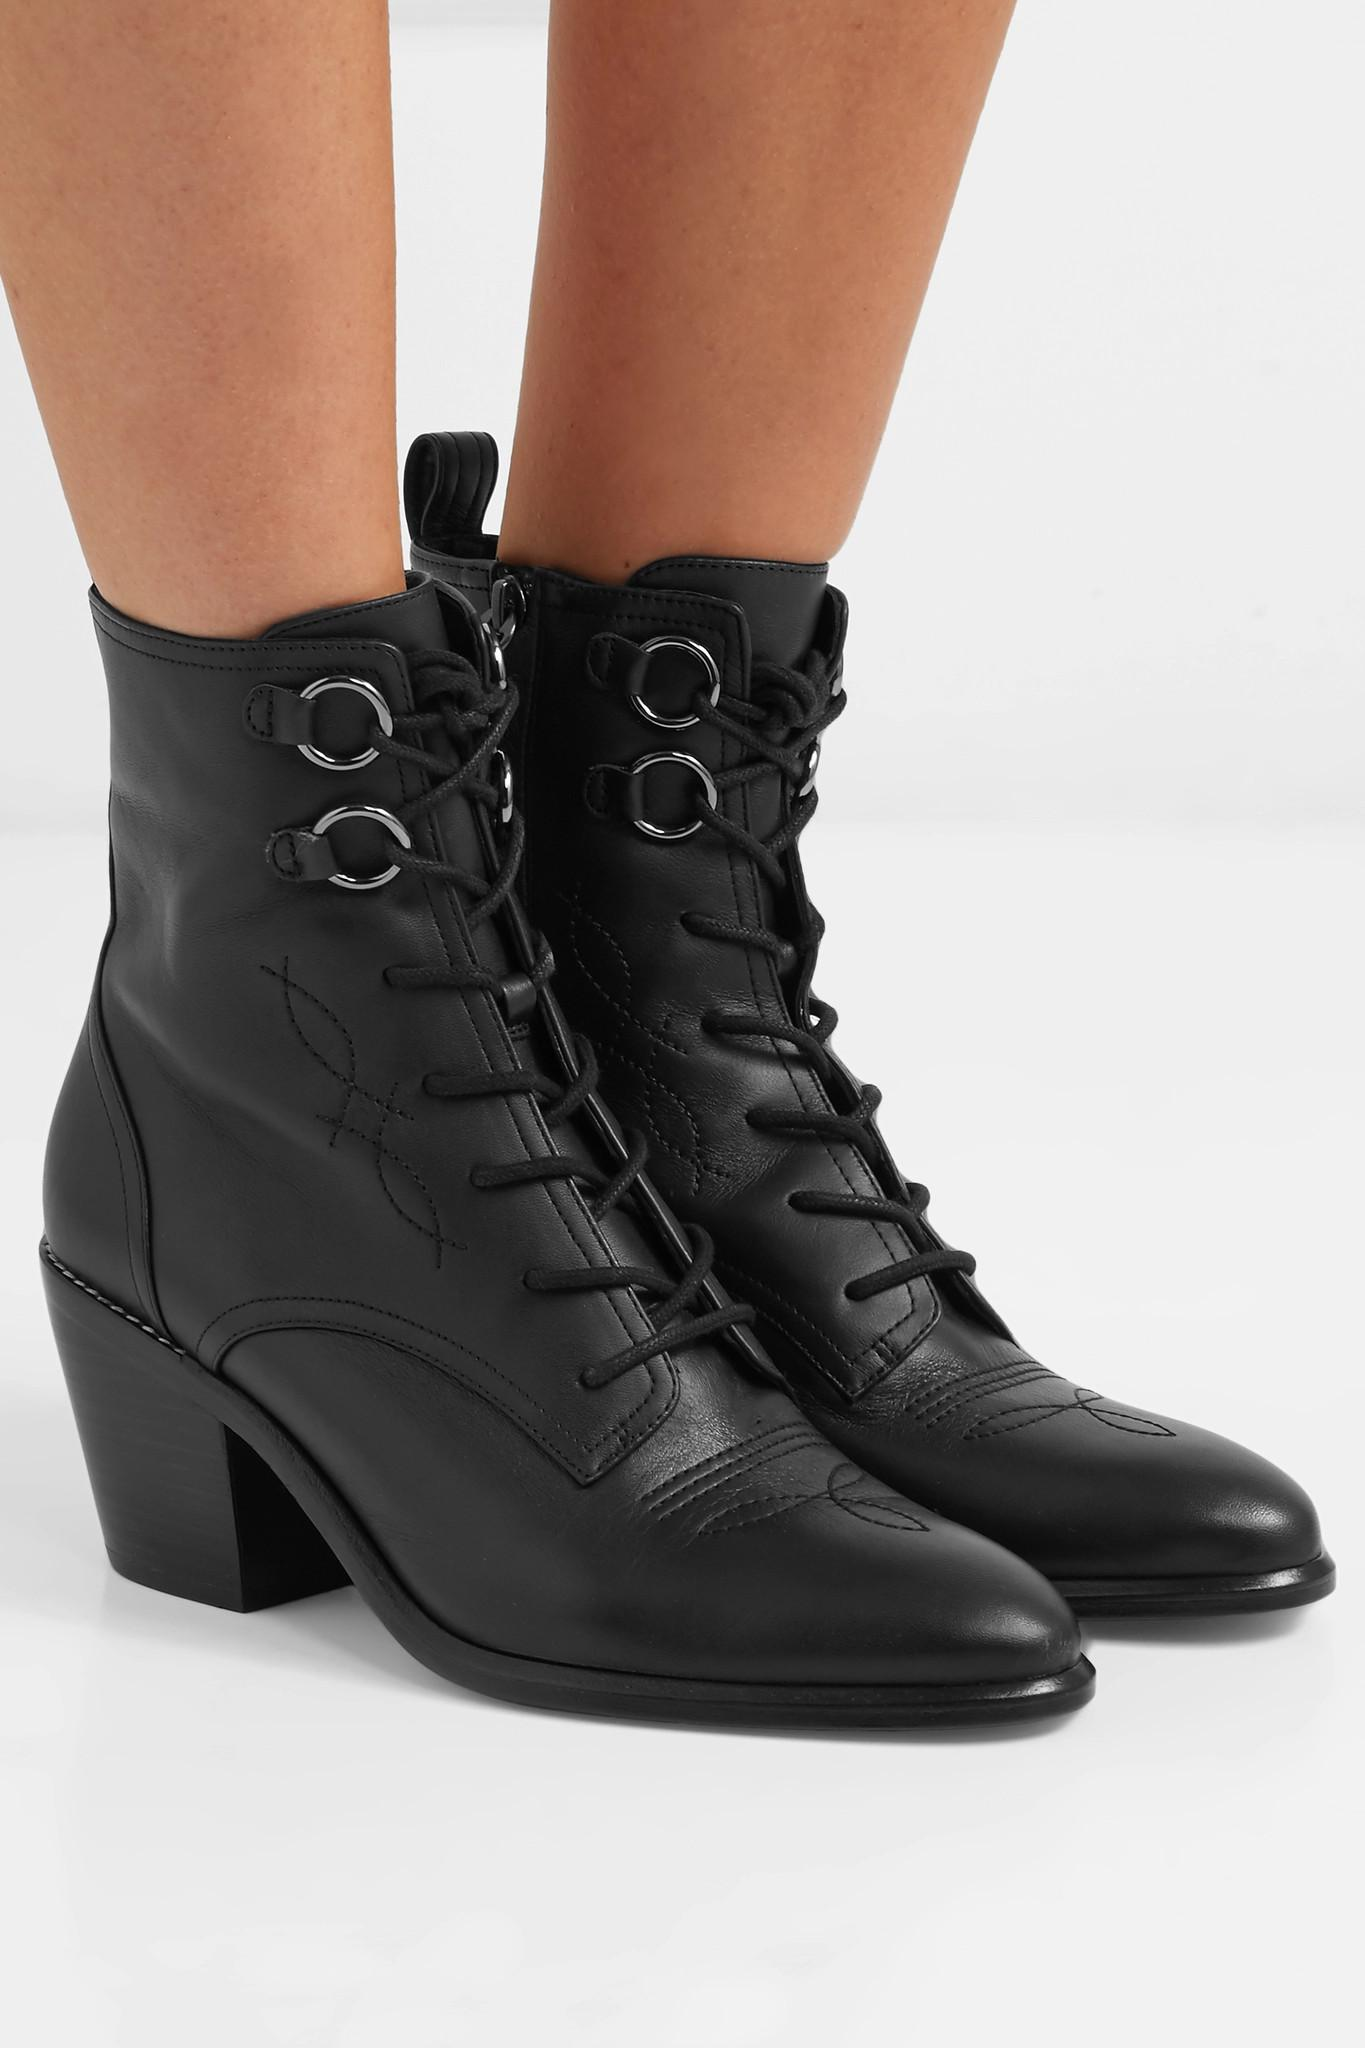 04cef871e738 Diane von Furstenberg - Black Dakota Lace-up Leather Ankle Boots - Lyst.  View fullscreen